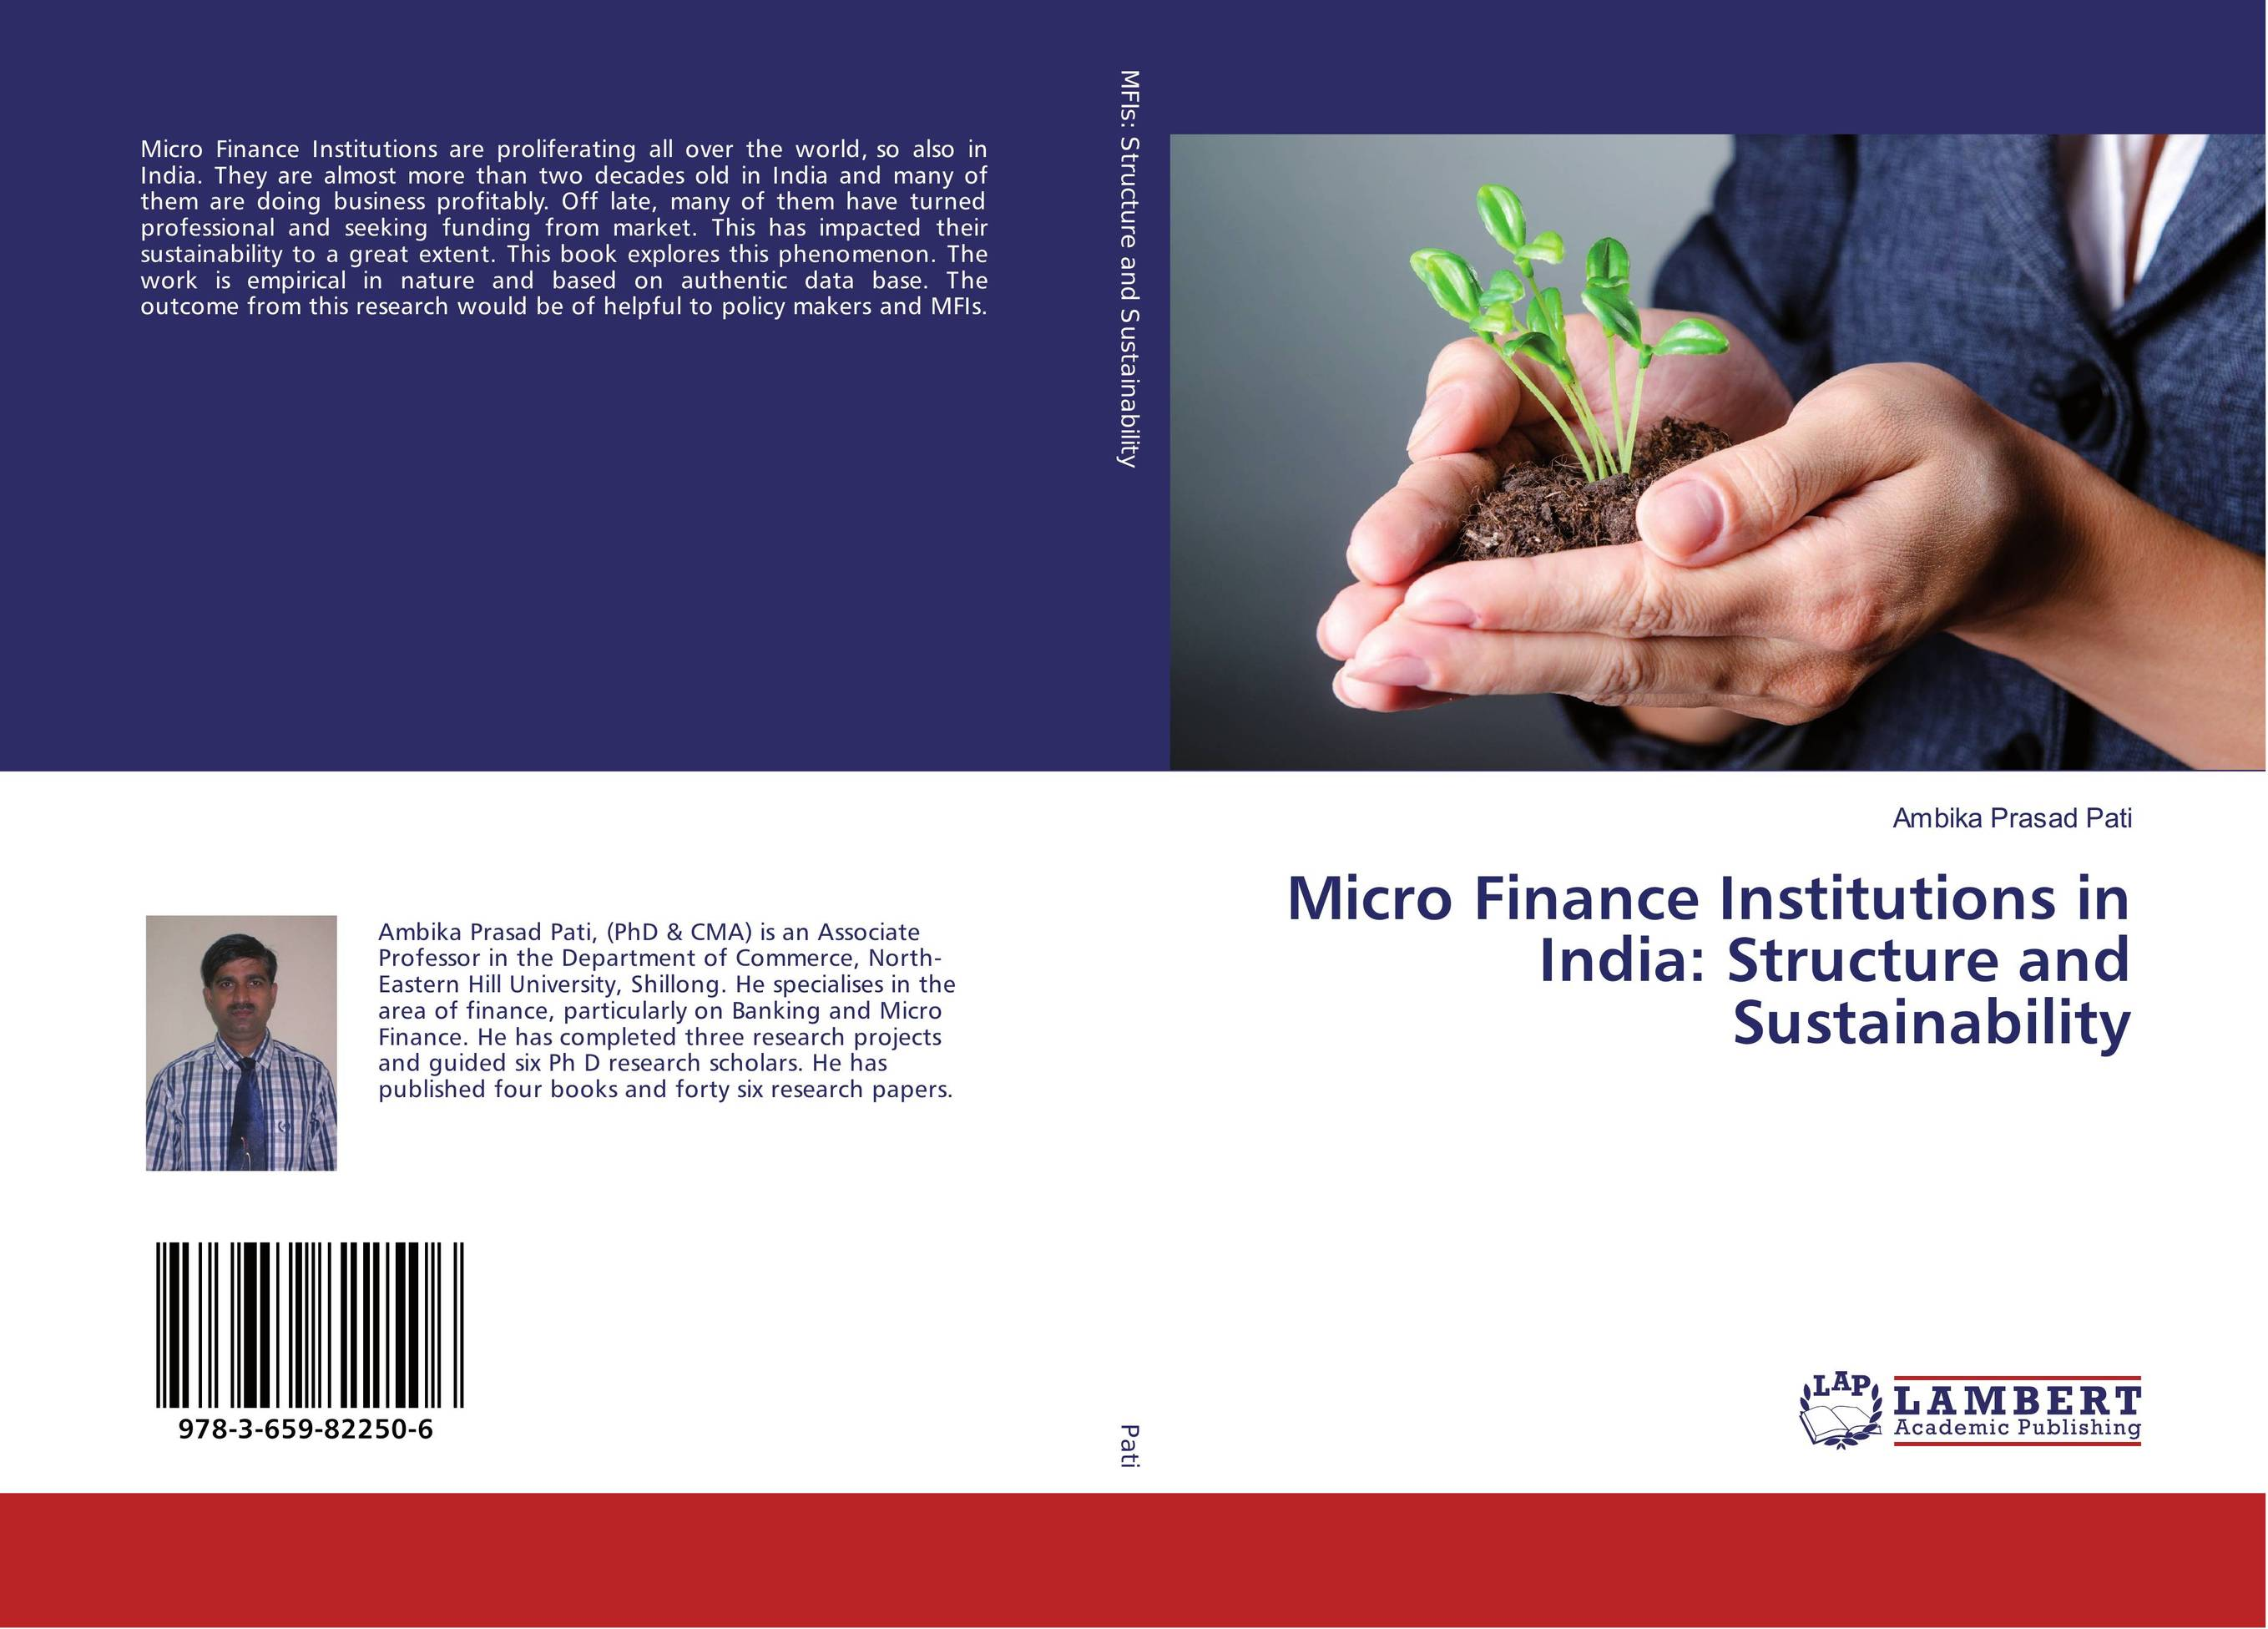 Micro Finance Institutions in India: Structure and Sustainability micro finance in india